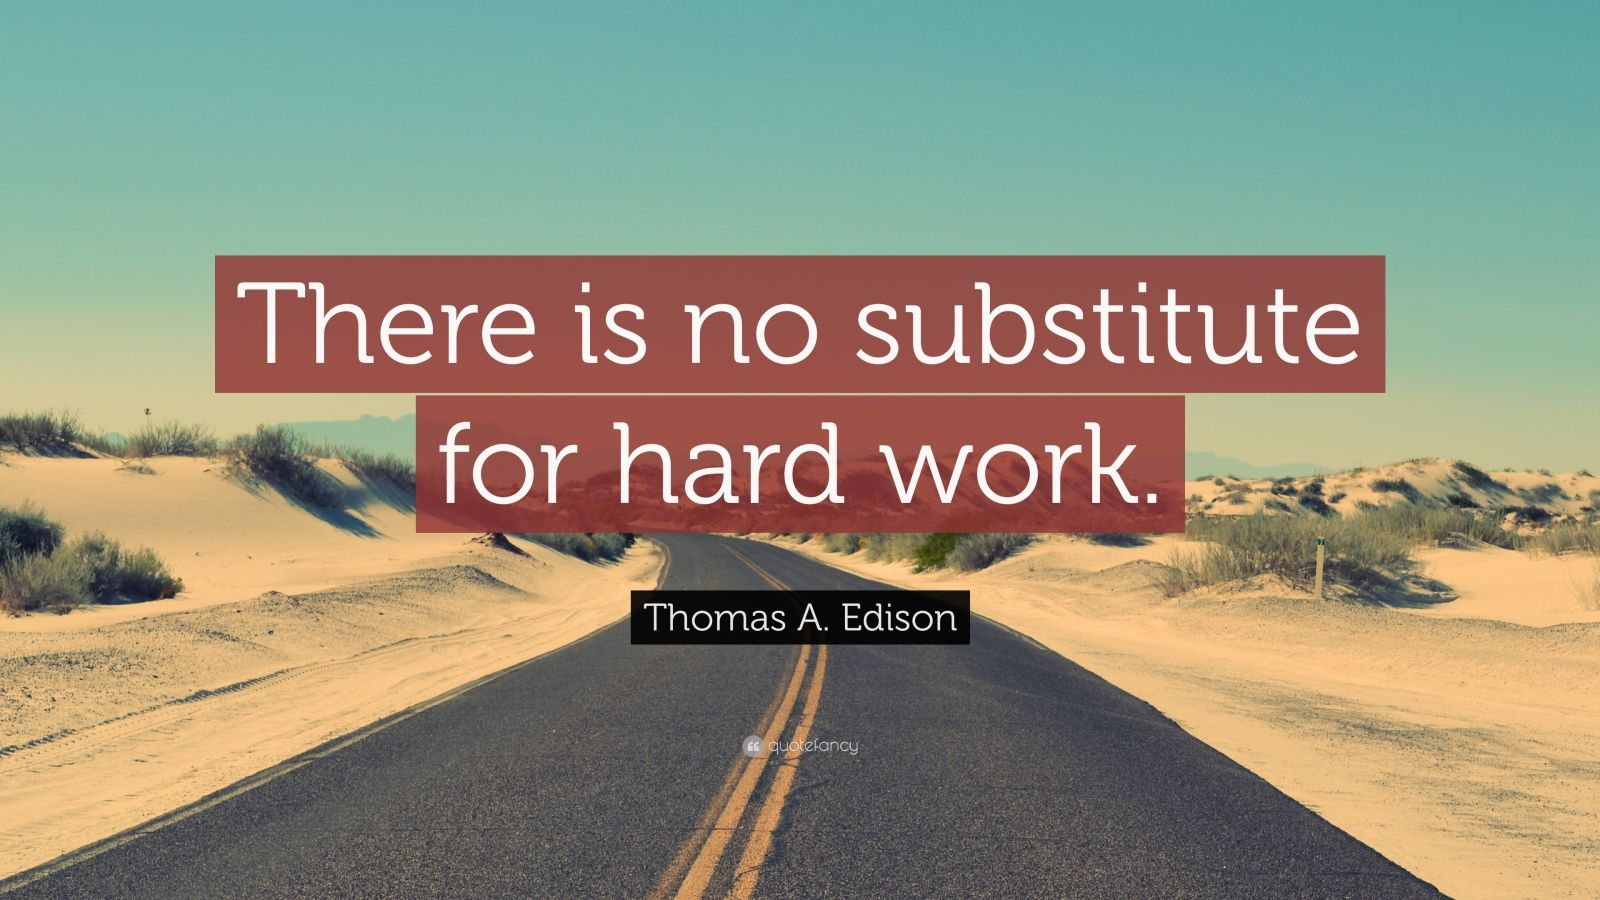 Work Inspirational Quotes Motivational Quotes 100 Wallpapers  Quotefancy